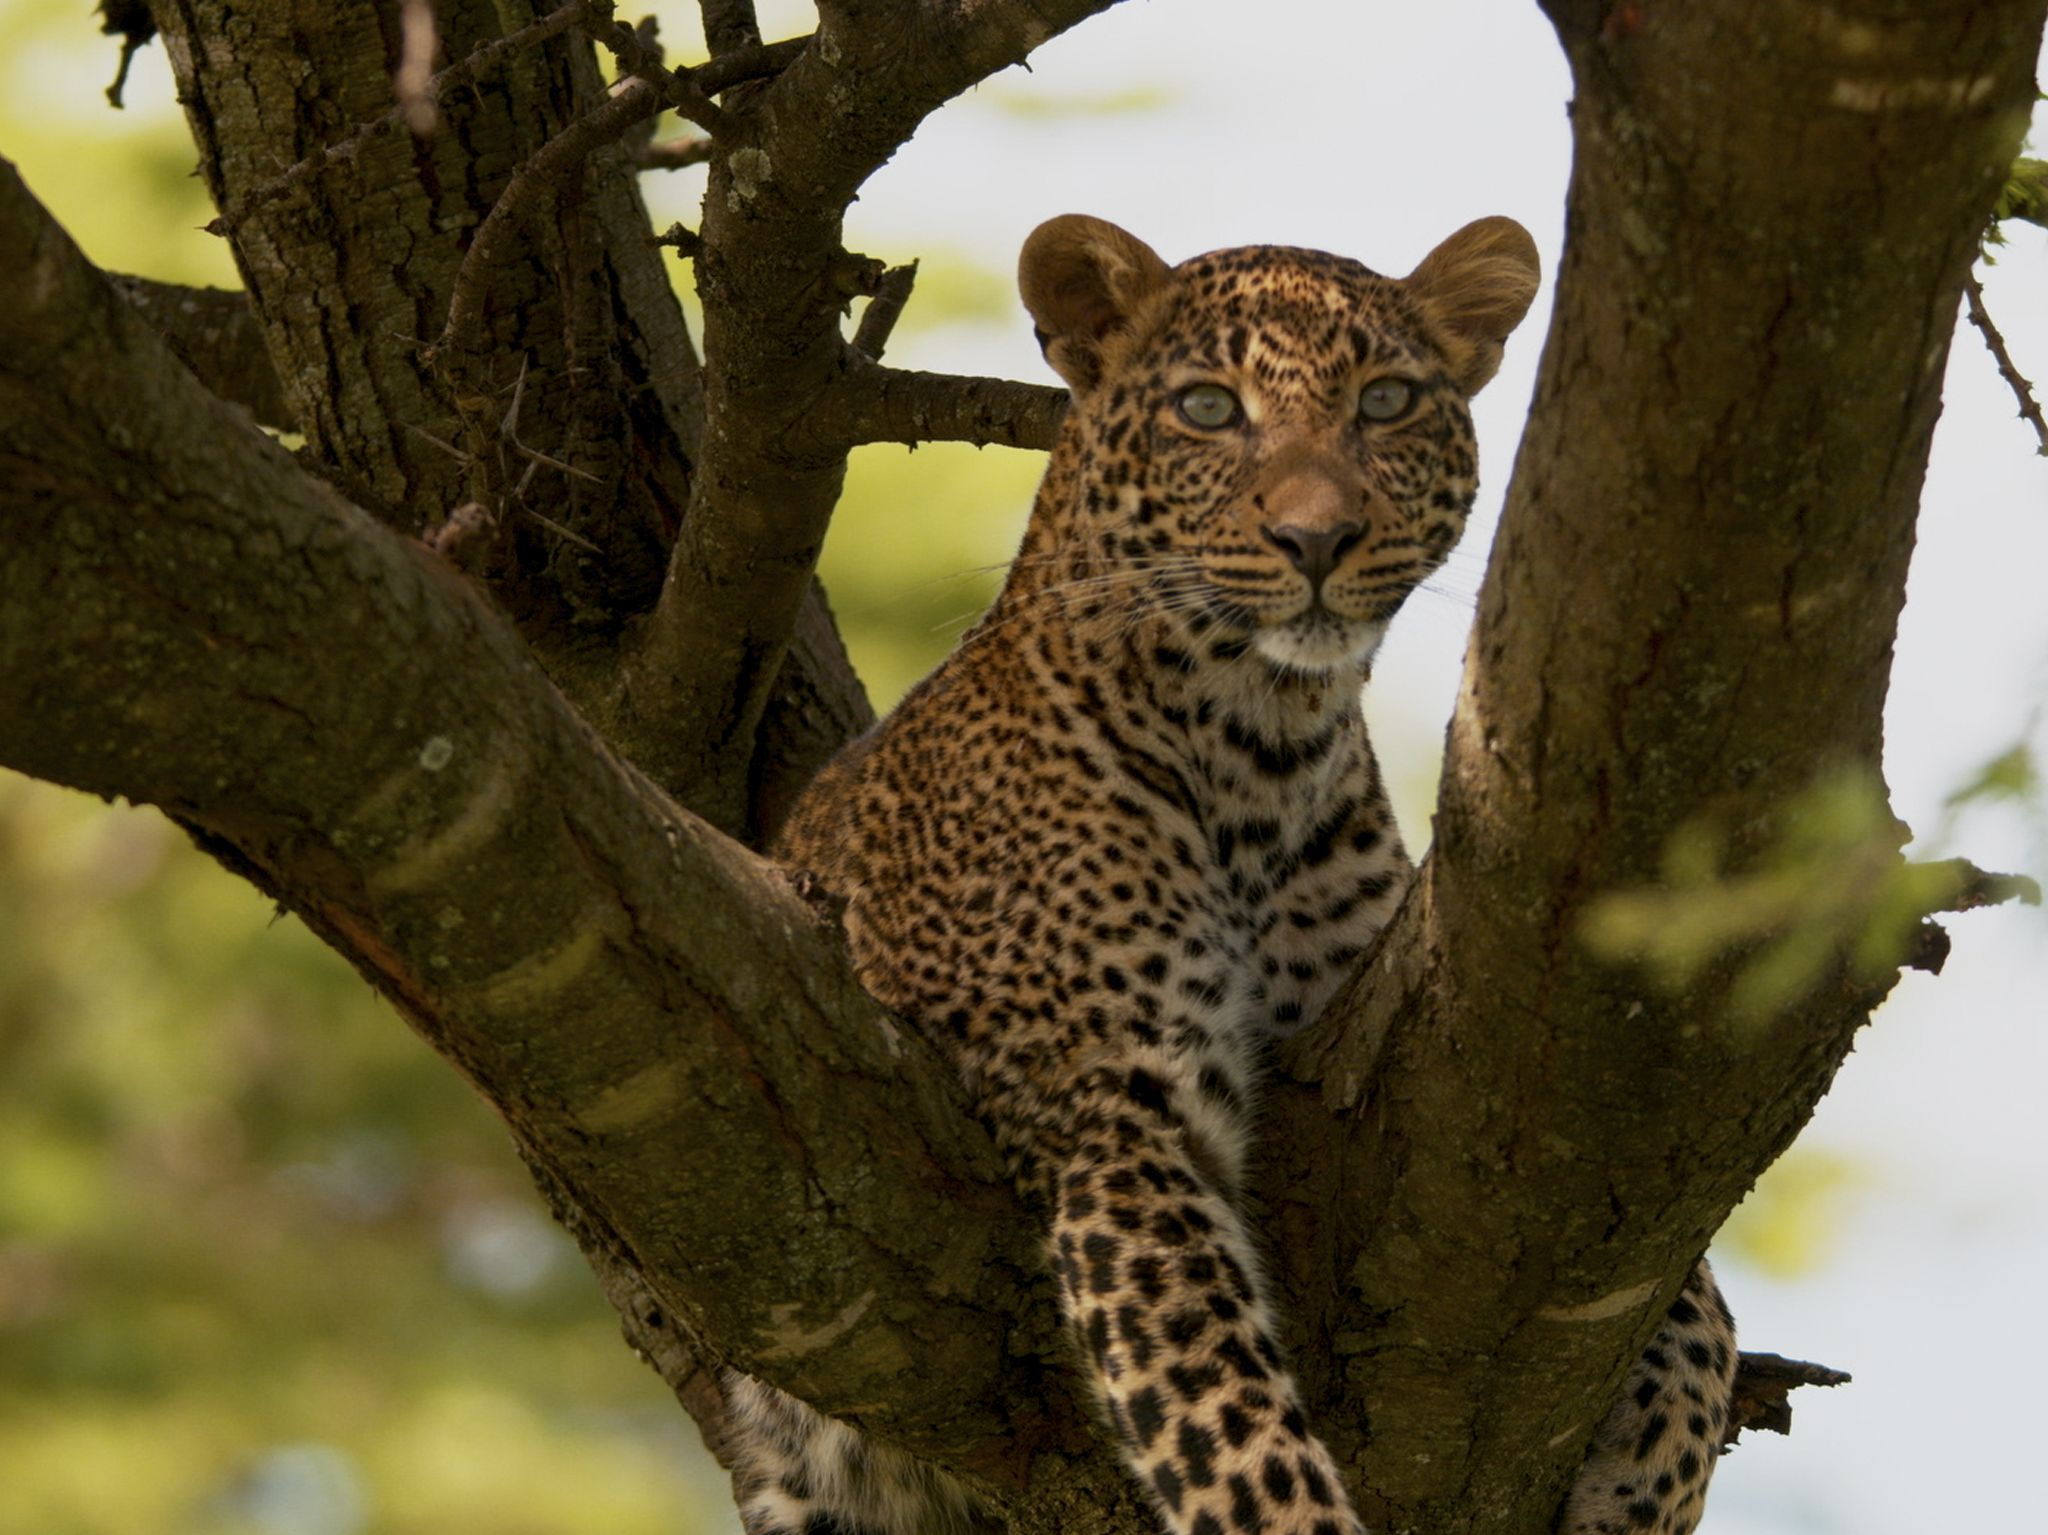 Toto lying in a tree. This image is from Jade Eyed Leopard. [Photo of the day - February 2021]